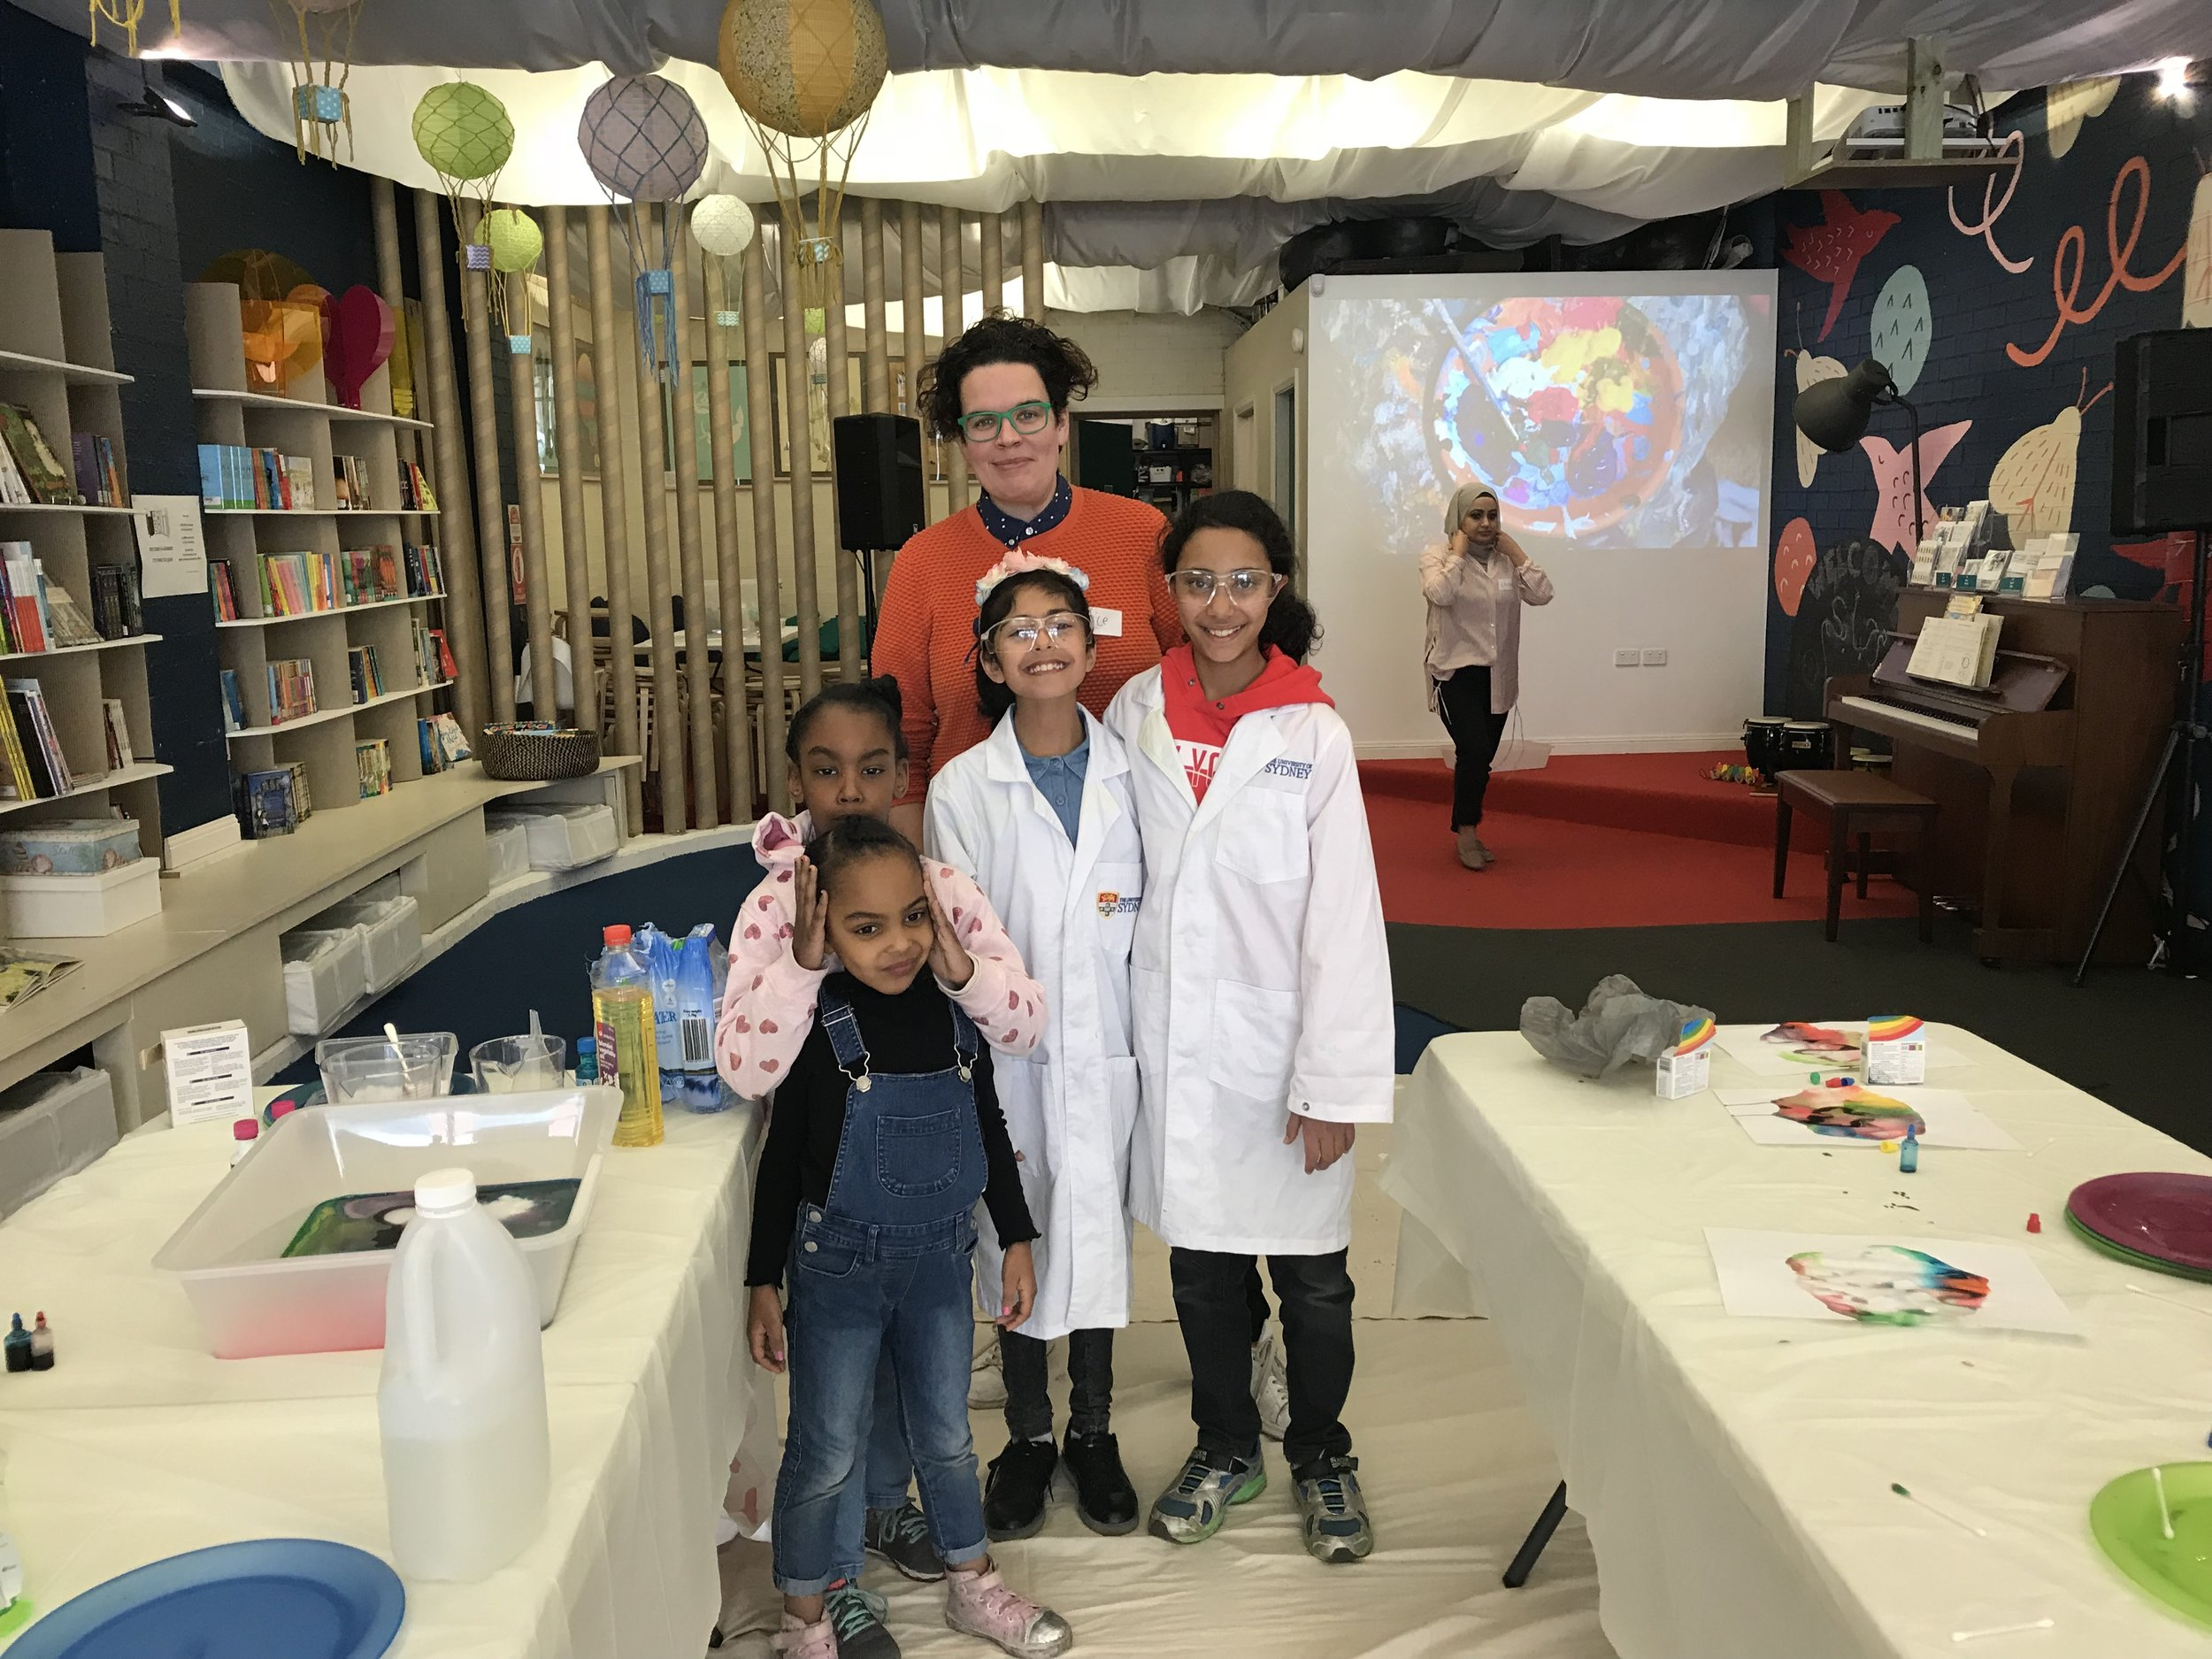 STEAM Workshops at Lost in Books with the next generation of scientists led by Dr Alice Williamson, chemist and science communicator